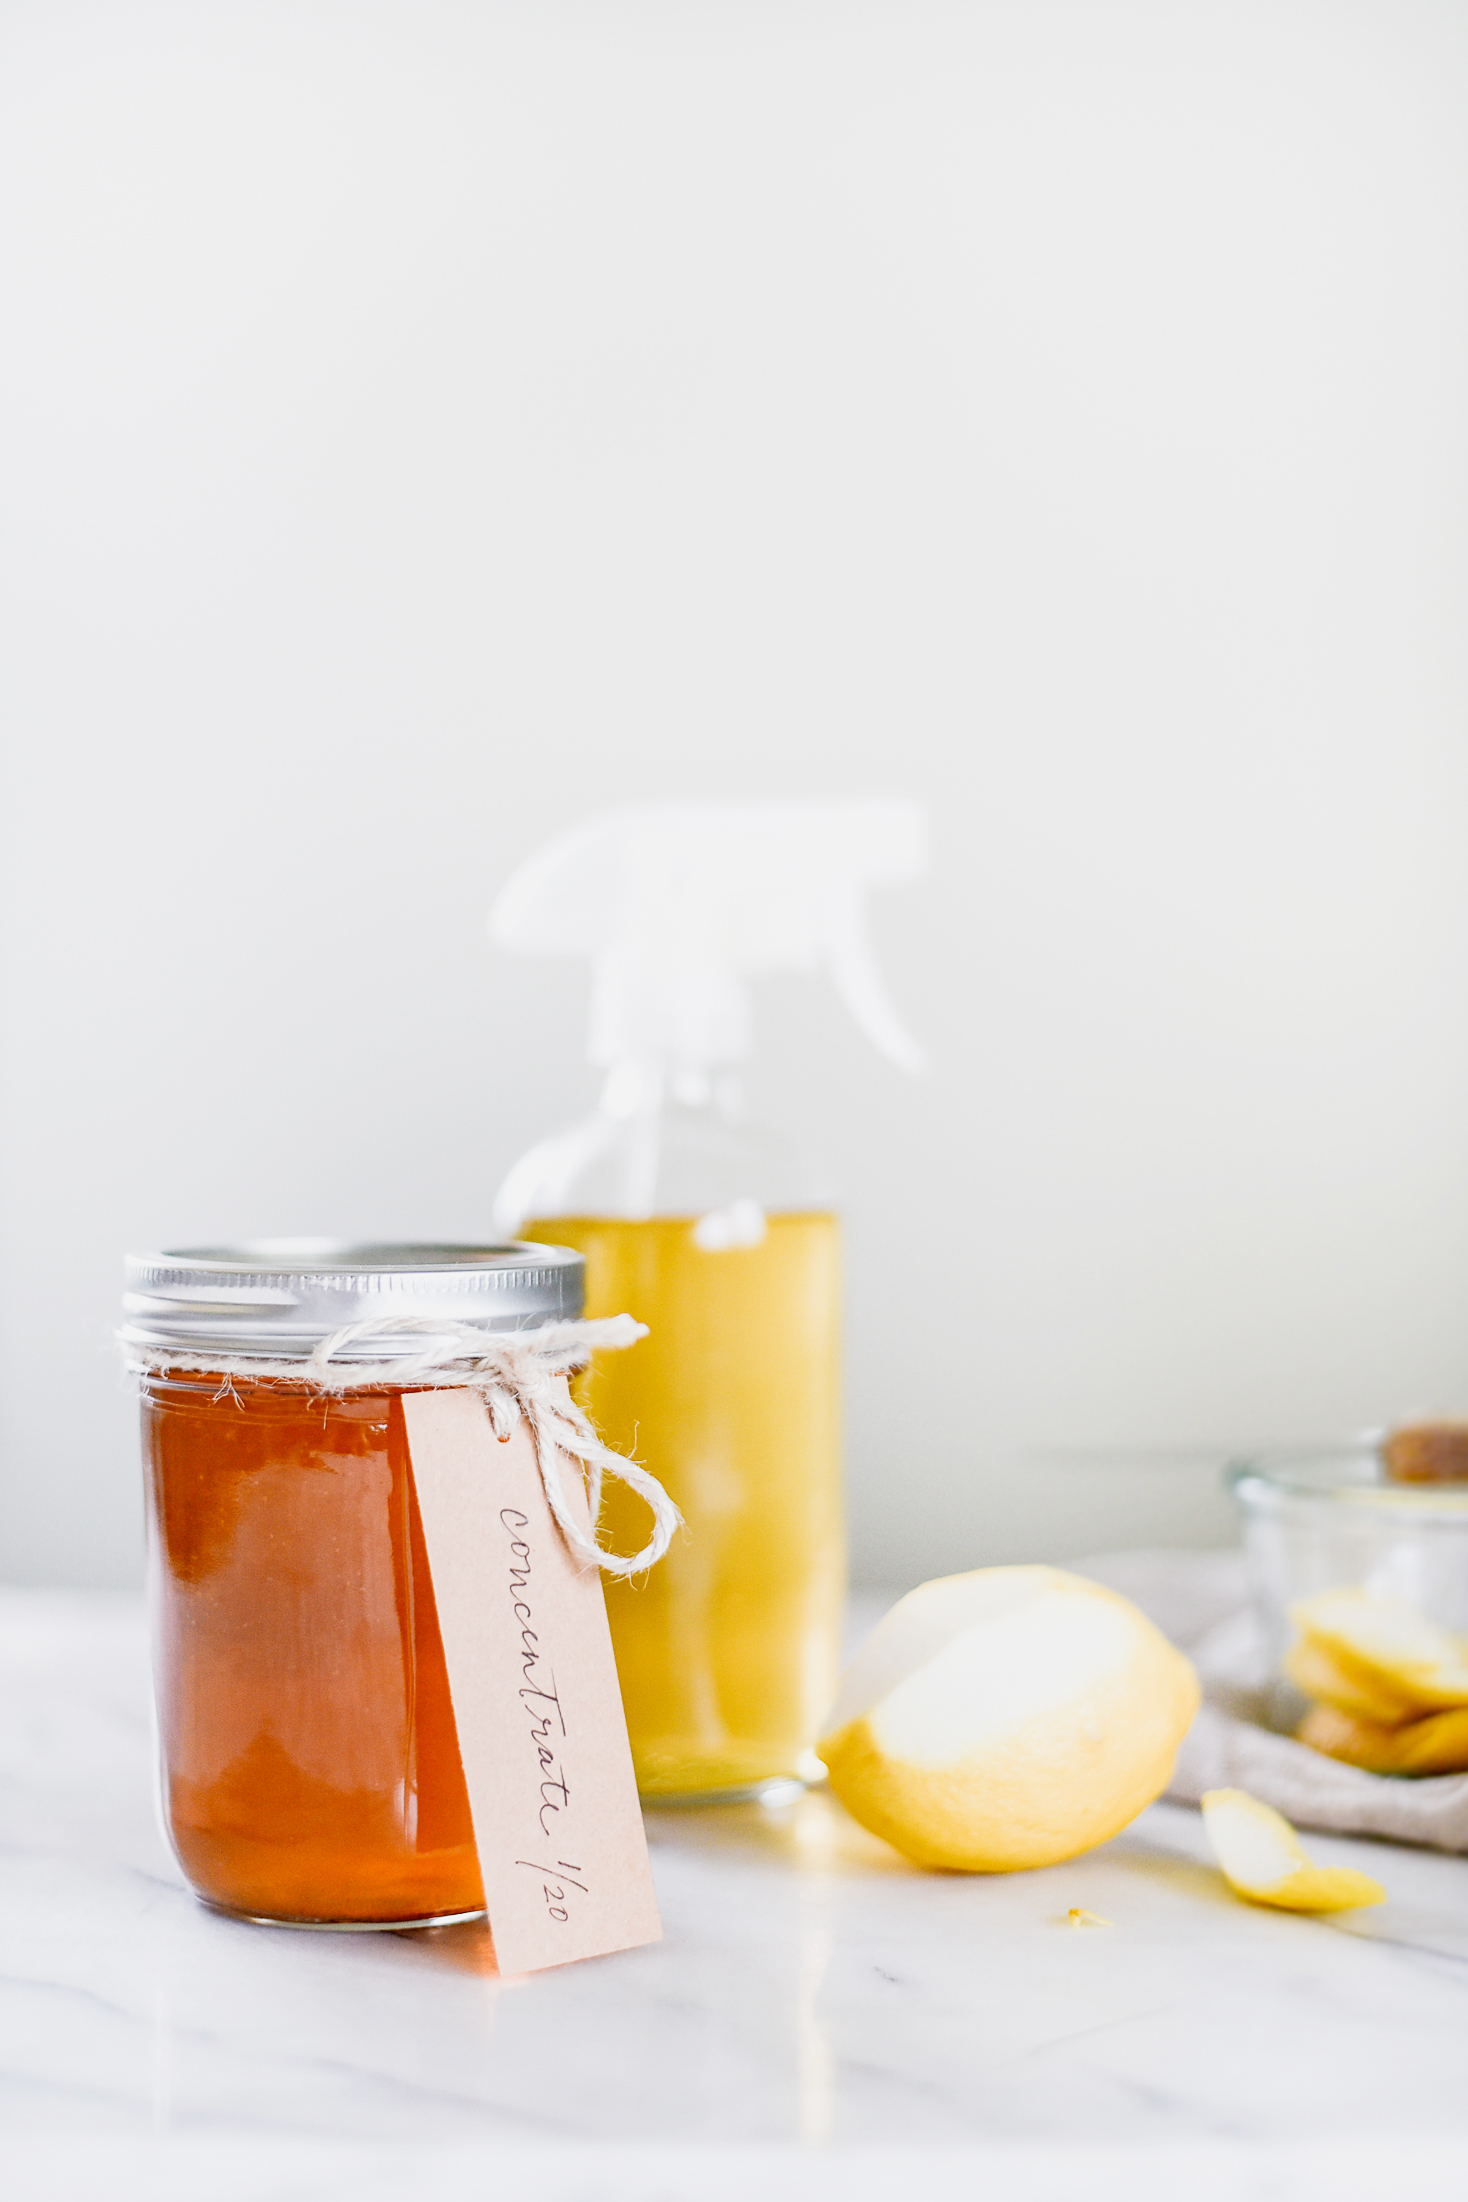 Use vinegar and citrus peels to make your own homemade countertop cleaner from boxwoodavenue.com